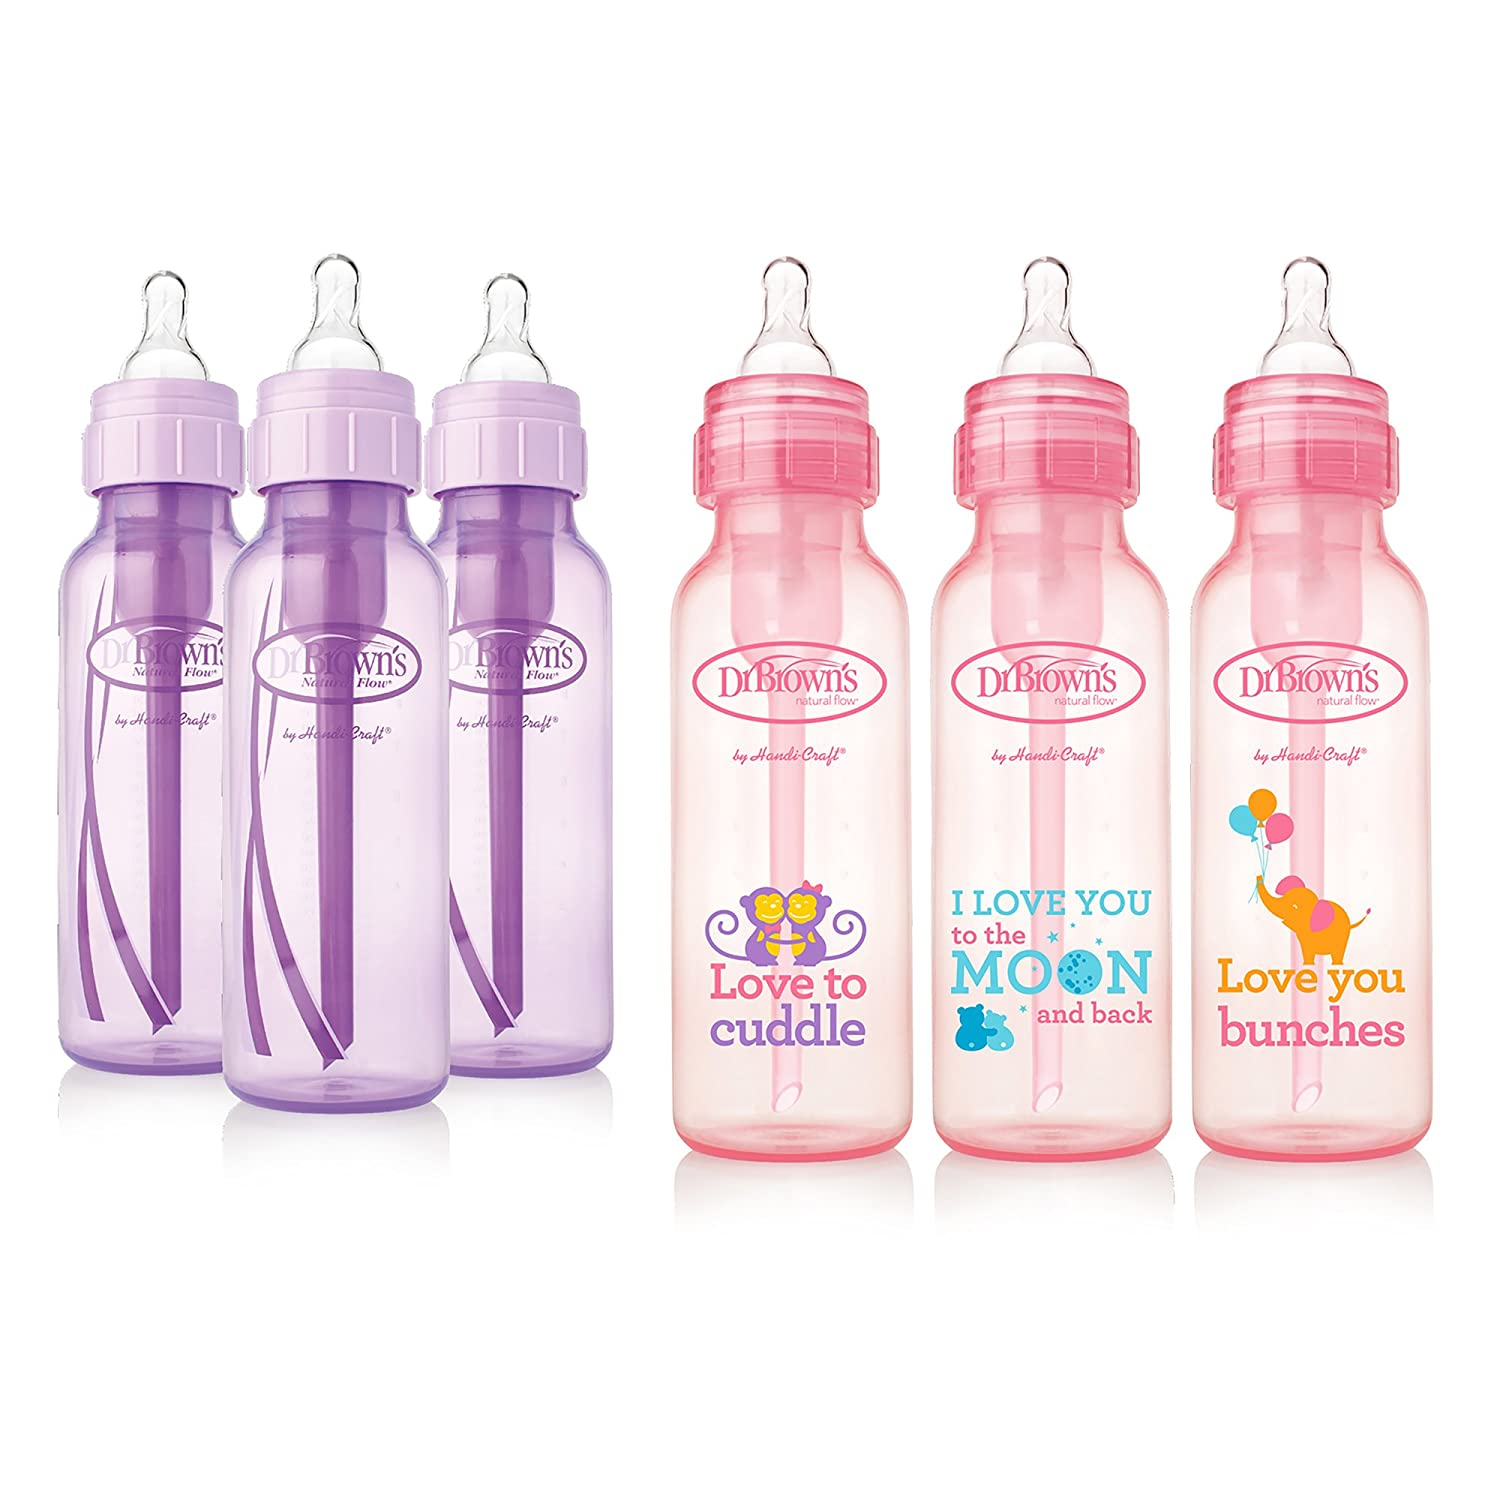 3 Browns Baby Bottles Girls 6 Pack Dr Pink bottles with new print 8 oz 8 oz Lavender and 3